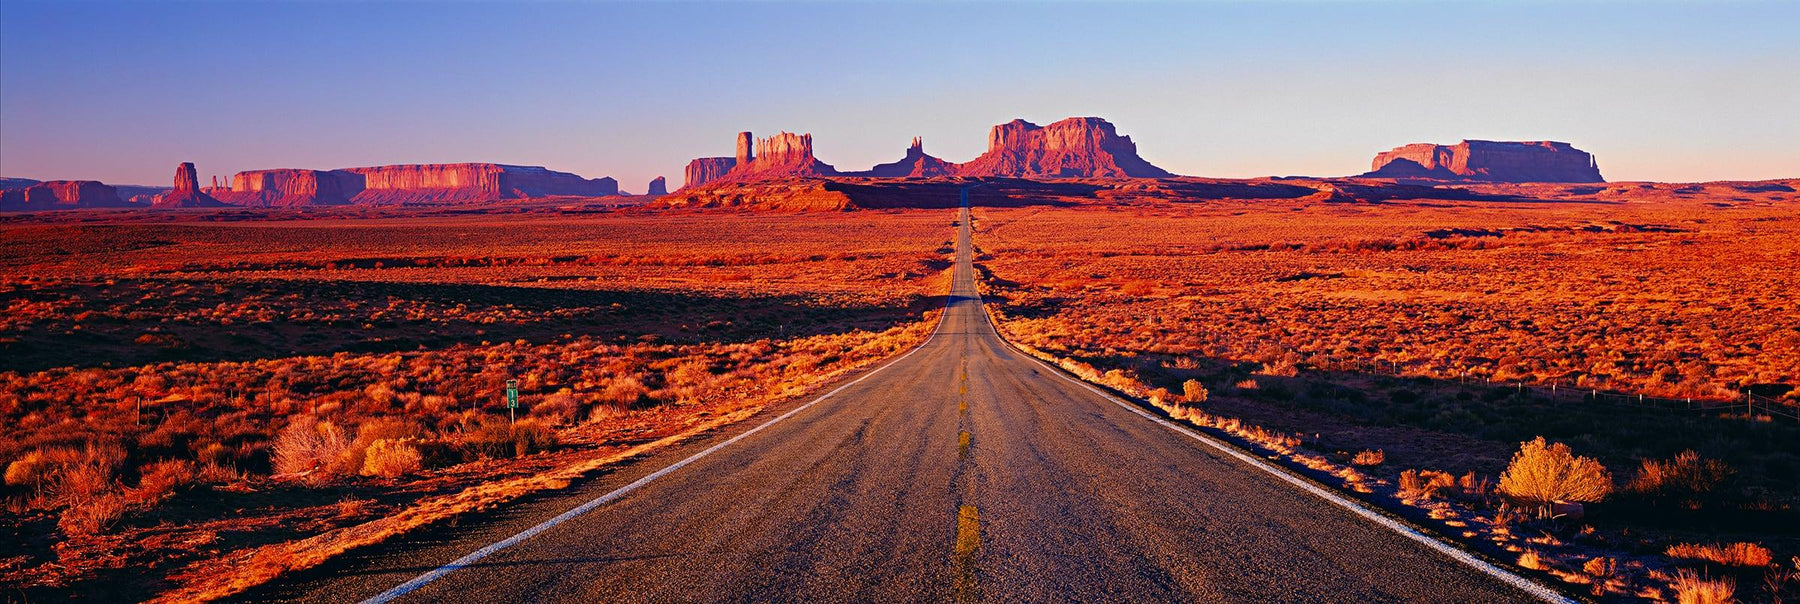 Highway 163 A Limited Edition Fine Art Photograph By Peter Lik Lik Fine Art